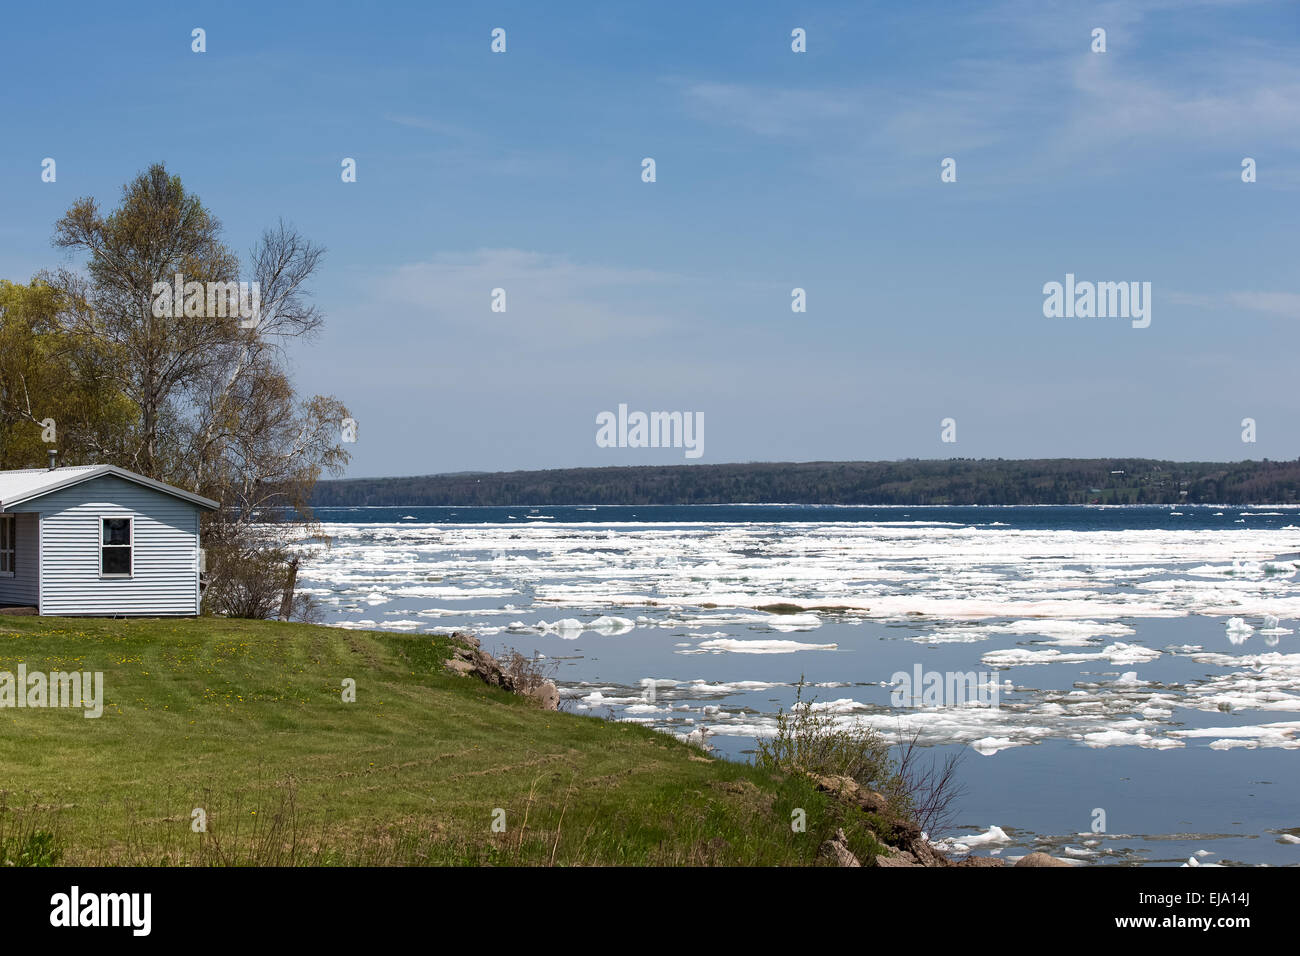 Ice breaking up on a bay in the Spring.   Small house overlooking the scene.  Copy space in upper part of frame. Stock Photo